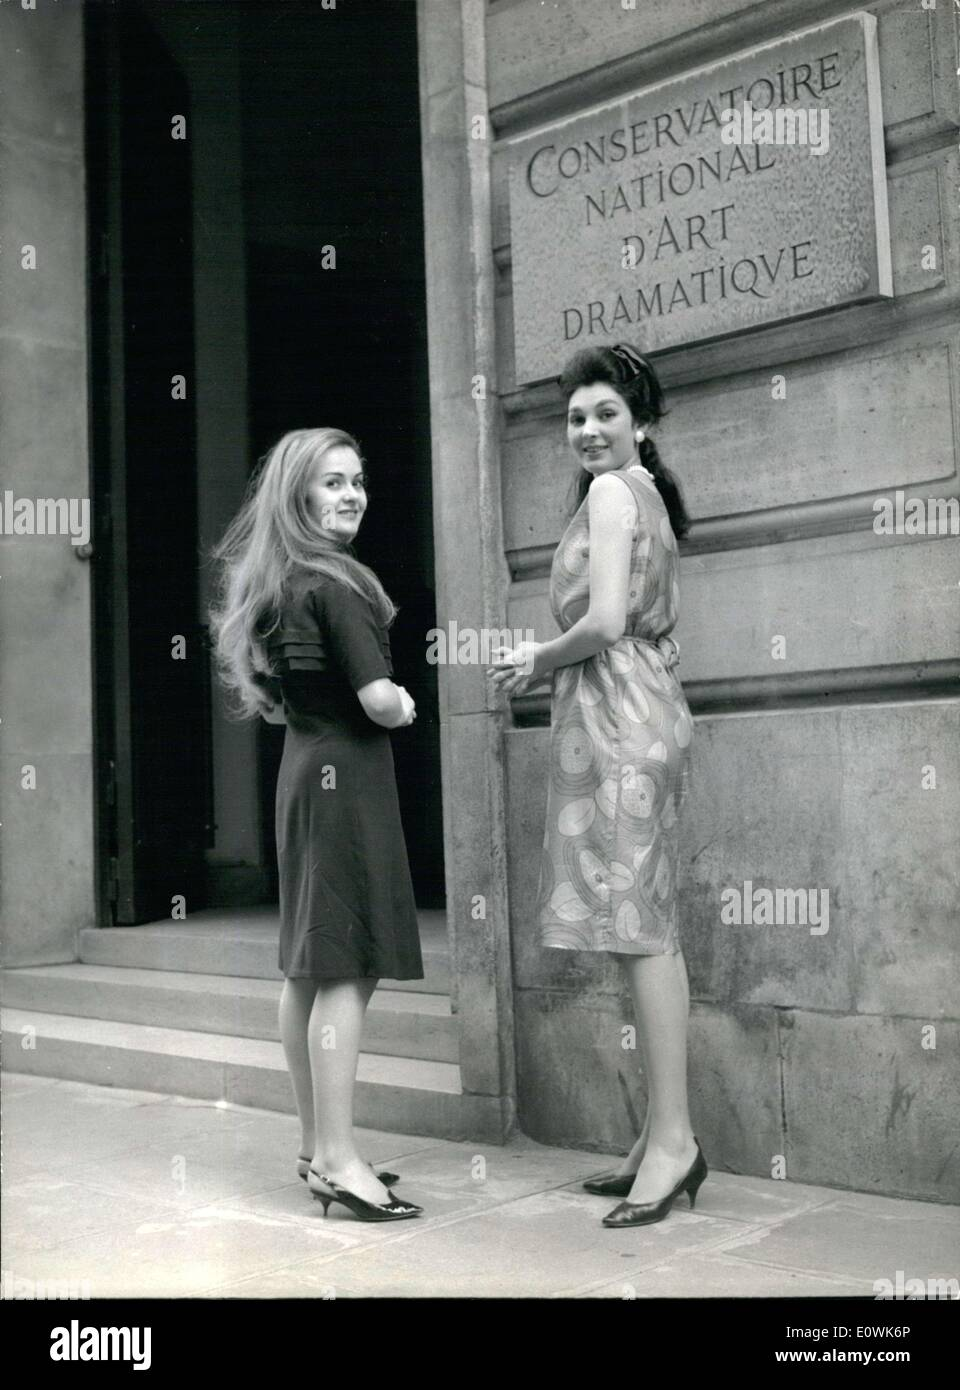 Jun. 25, 1963 - The two exceptions at the Conservatory's Yearly exams: Yearly exams of French Conservatoire National D'Art dramatique will take place during the first daus of July. 15 women will take part, two of them as rare exceptions, as a traditional rule says that only 2nd and 3rd year candidates are presented. But this year there will be two young girls of the 1st year: Claire Vernet and Annie Sinigaglia. The first is Louis Seigner's Pupil and will appear as Celimene, from the Misantrhope, the second Robert Manuel's pupil will present Camille from on Ne Badine Pas Avec L'Amour - Stock Image